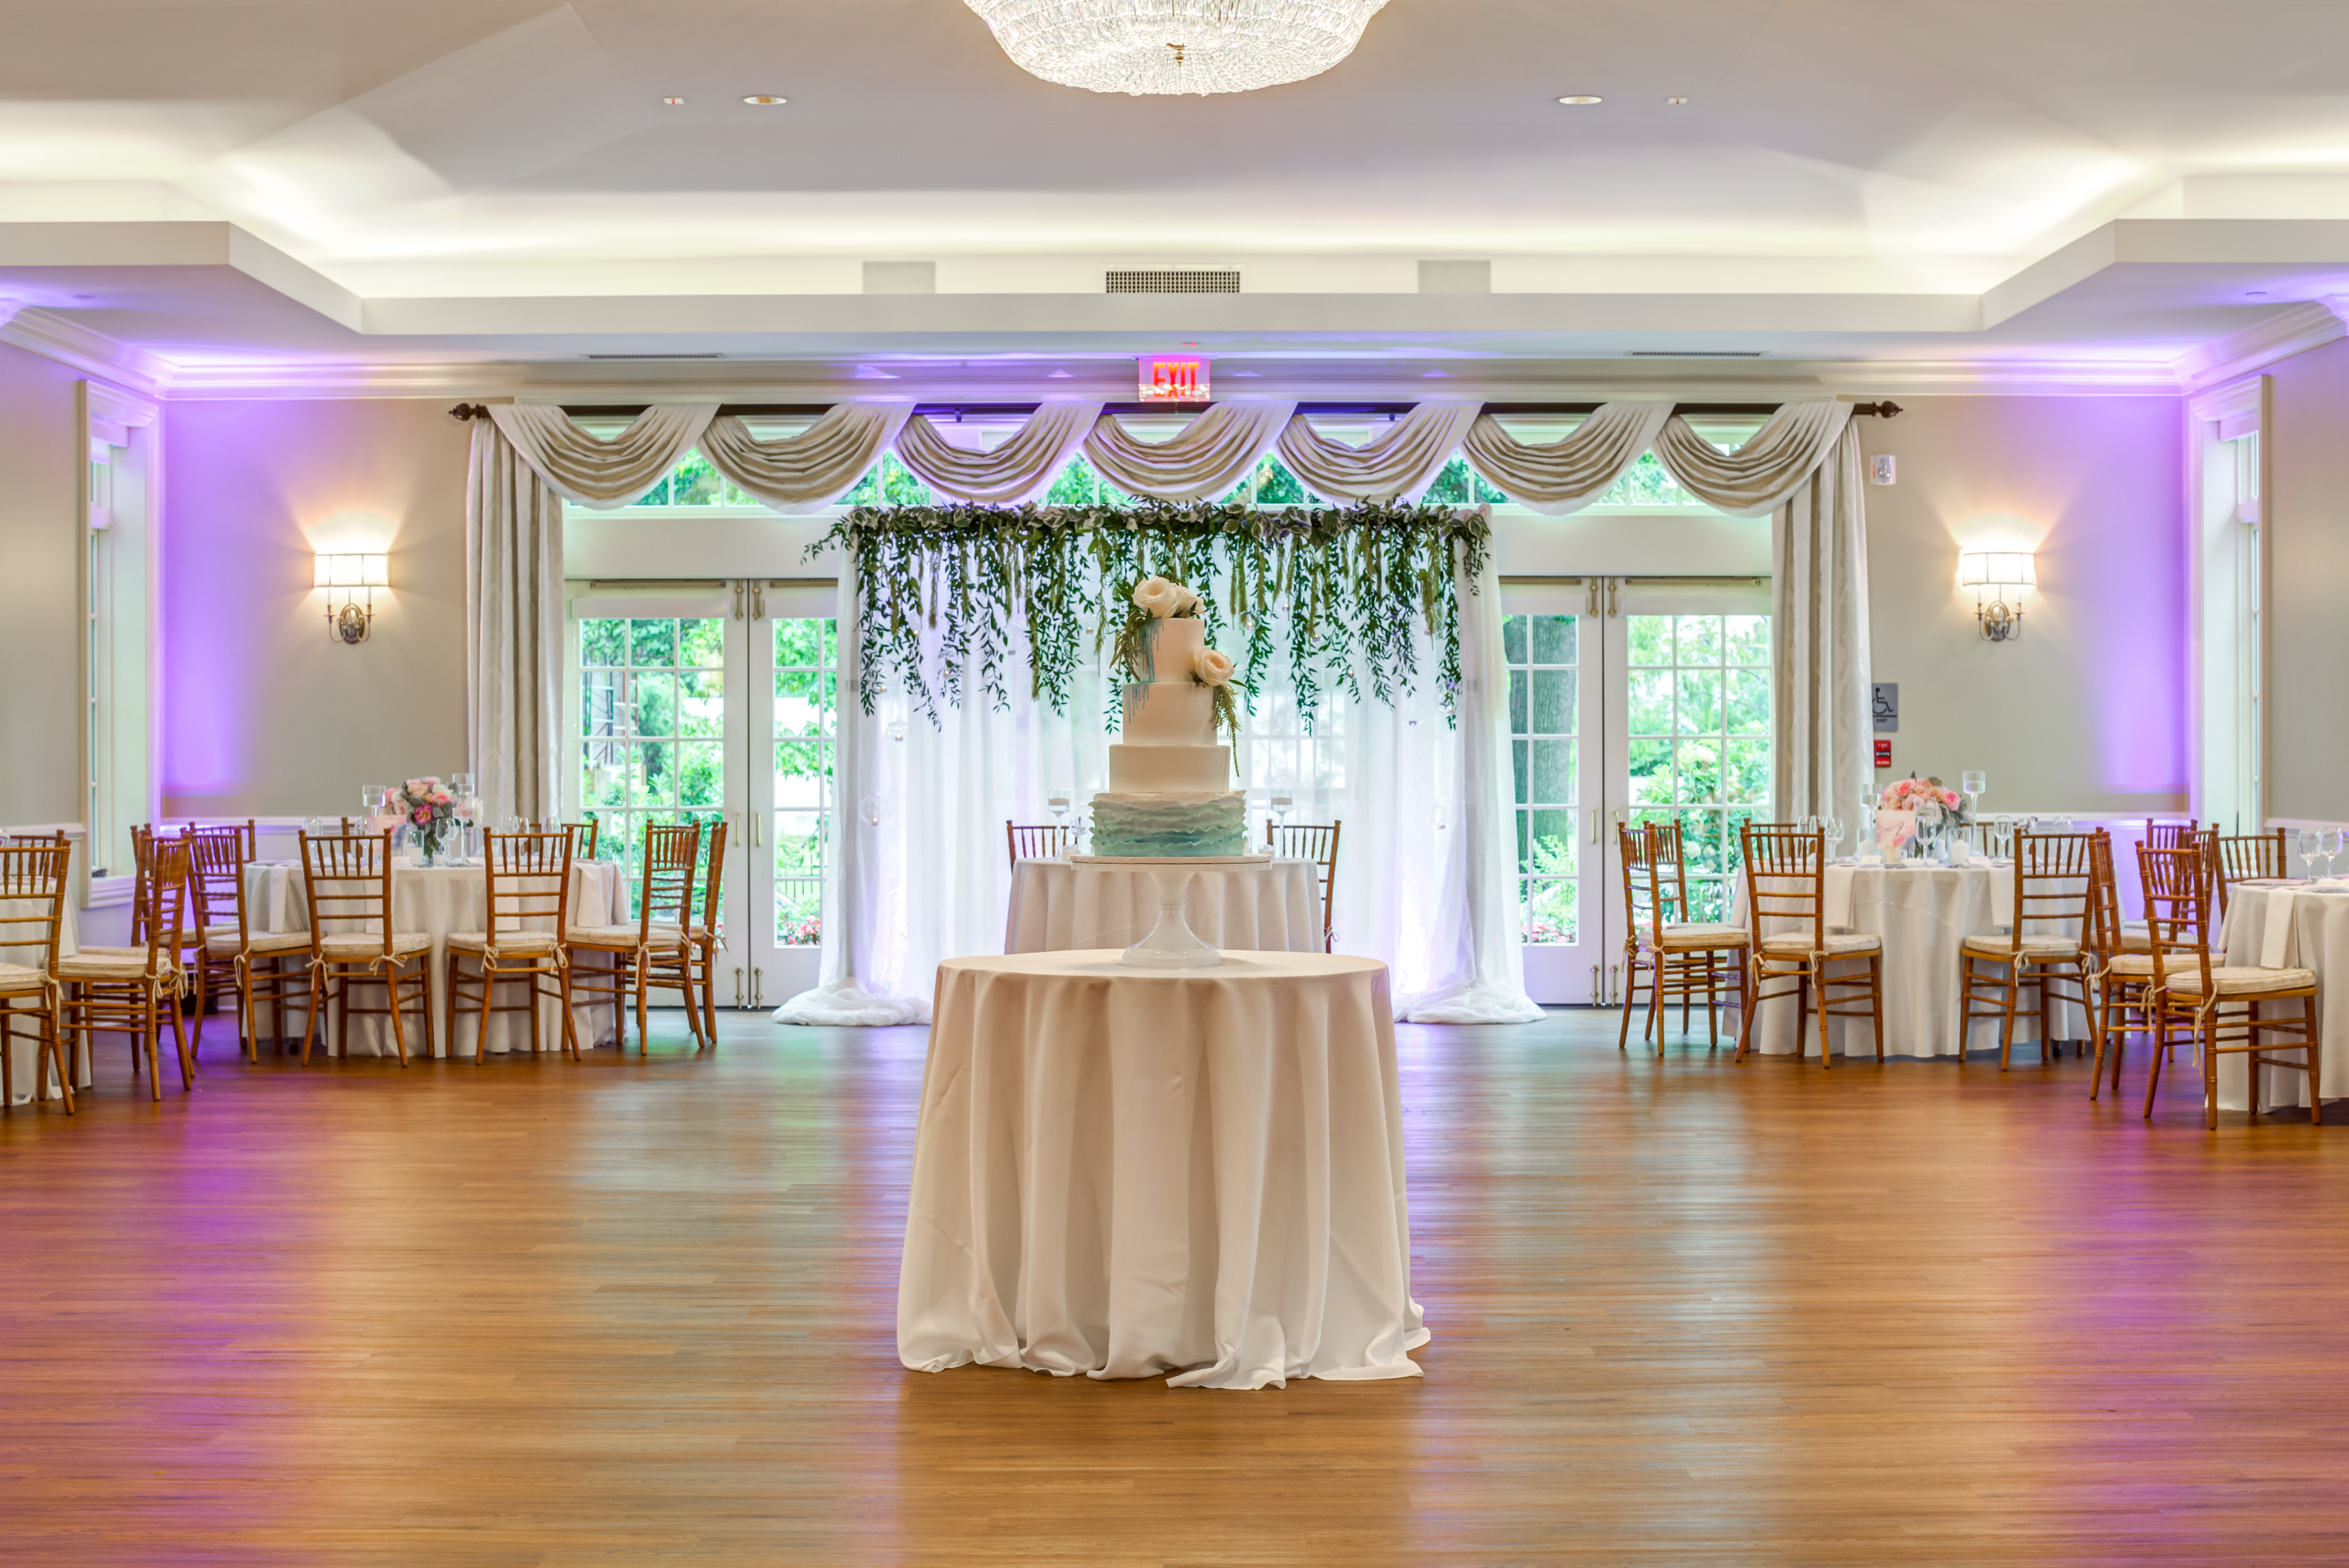 Romantic weddings venues in cleveland ohio glidden house wedding ballroom with cake junglespirit Image collections